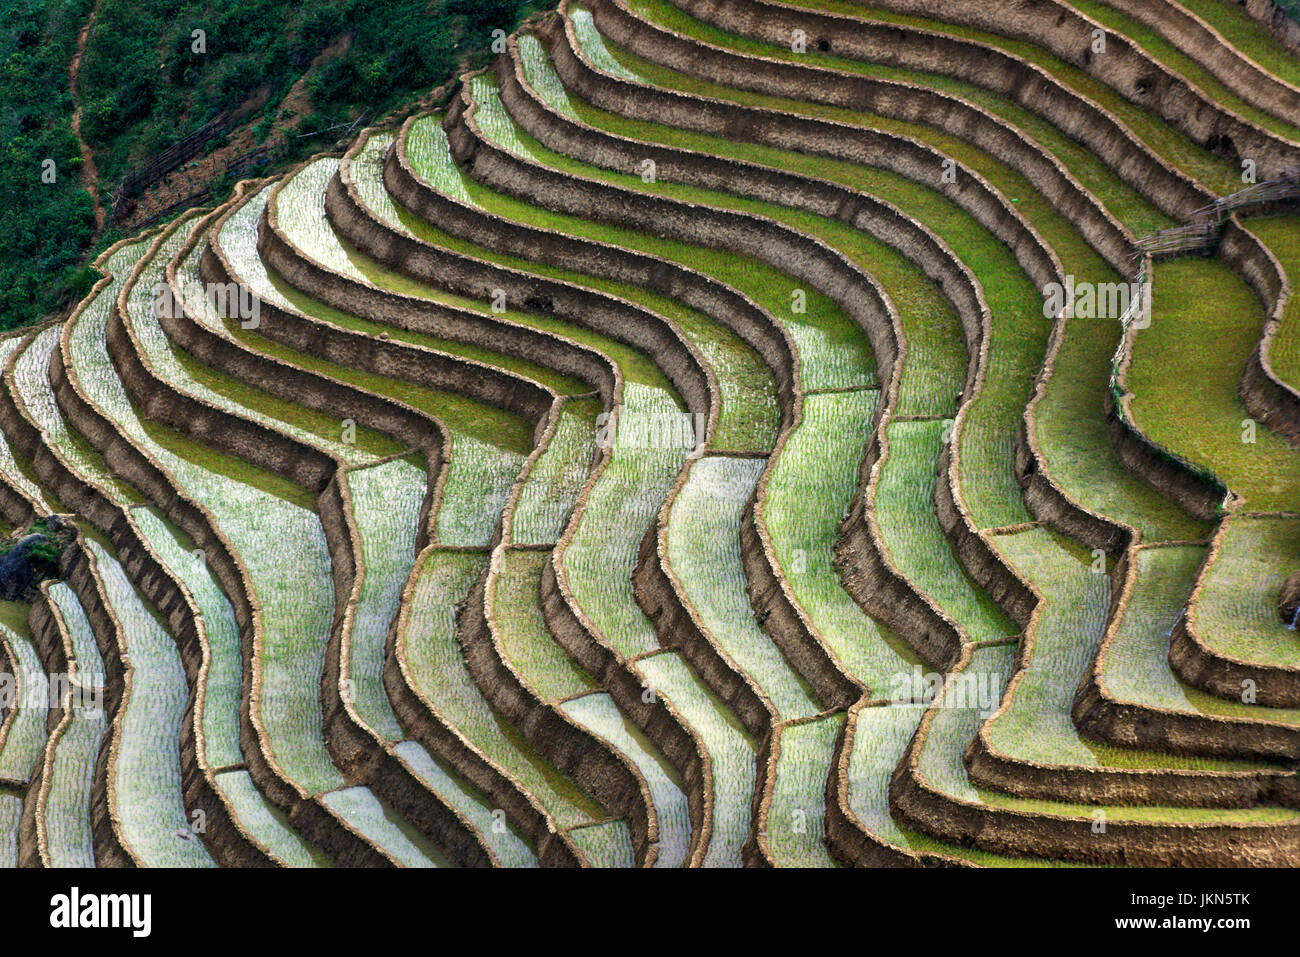 Scenic view of Rice paddies near Sapa, northern Vietnam. - Stock Image